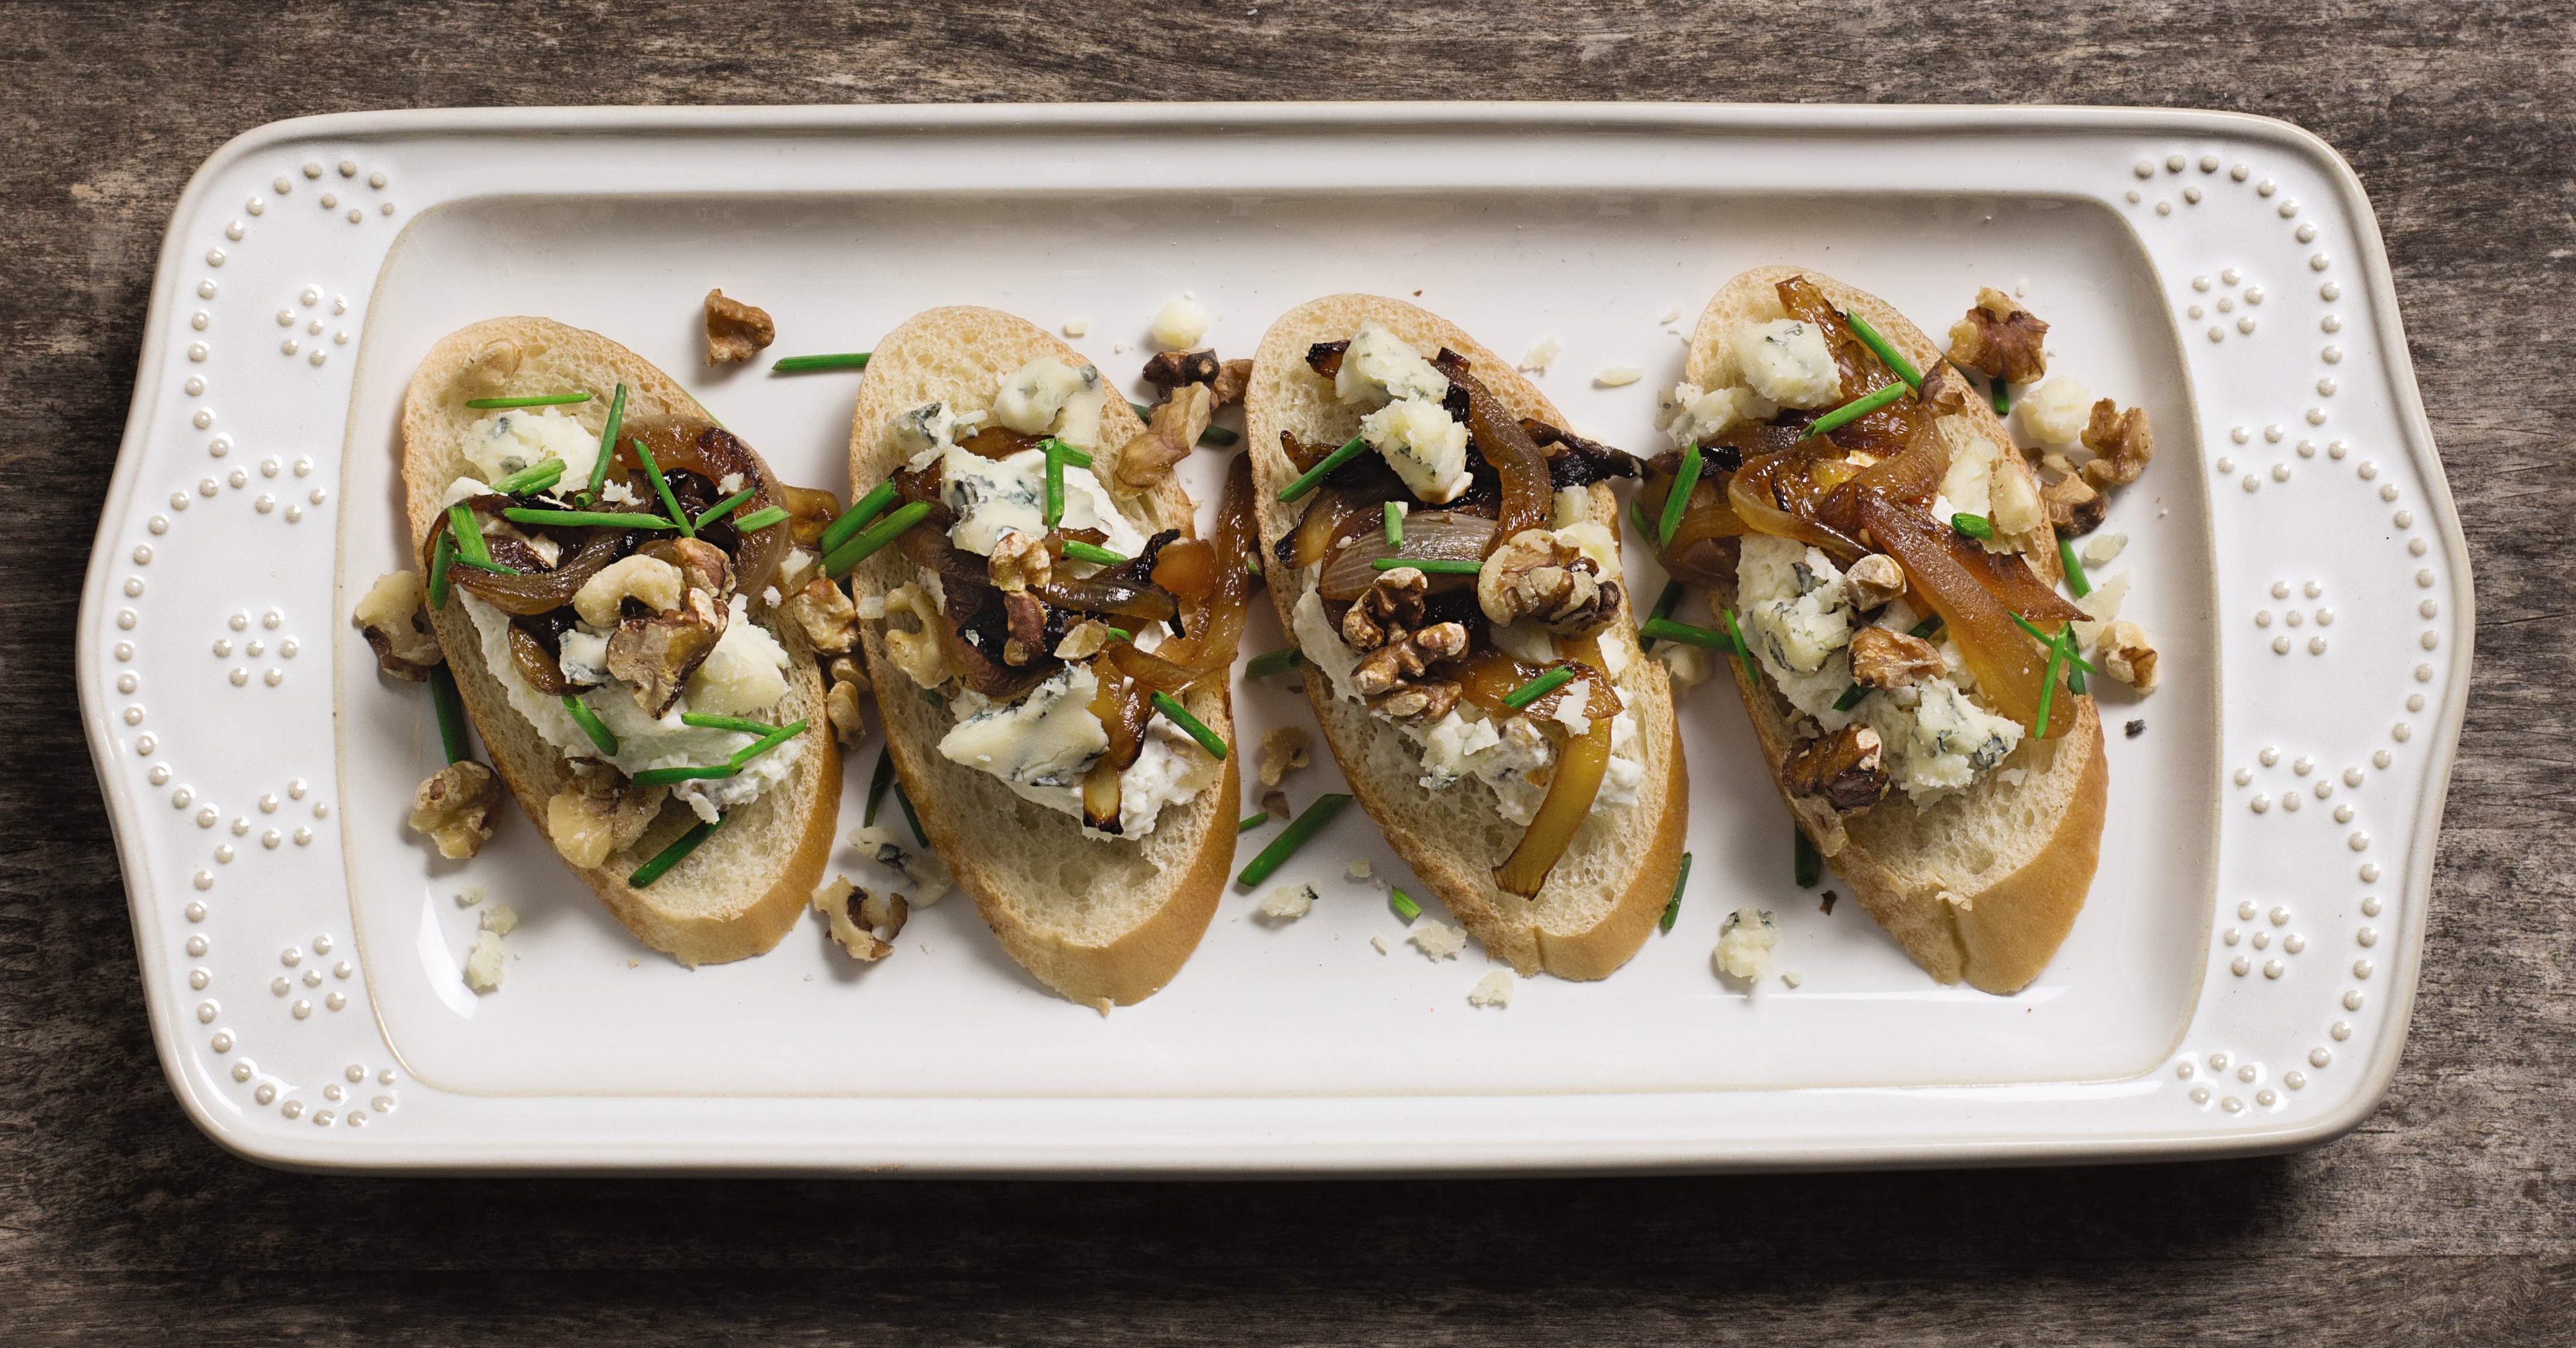 Crostini with blue cheese and walnuts.